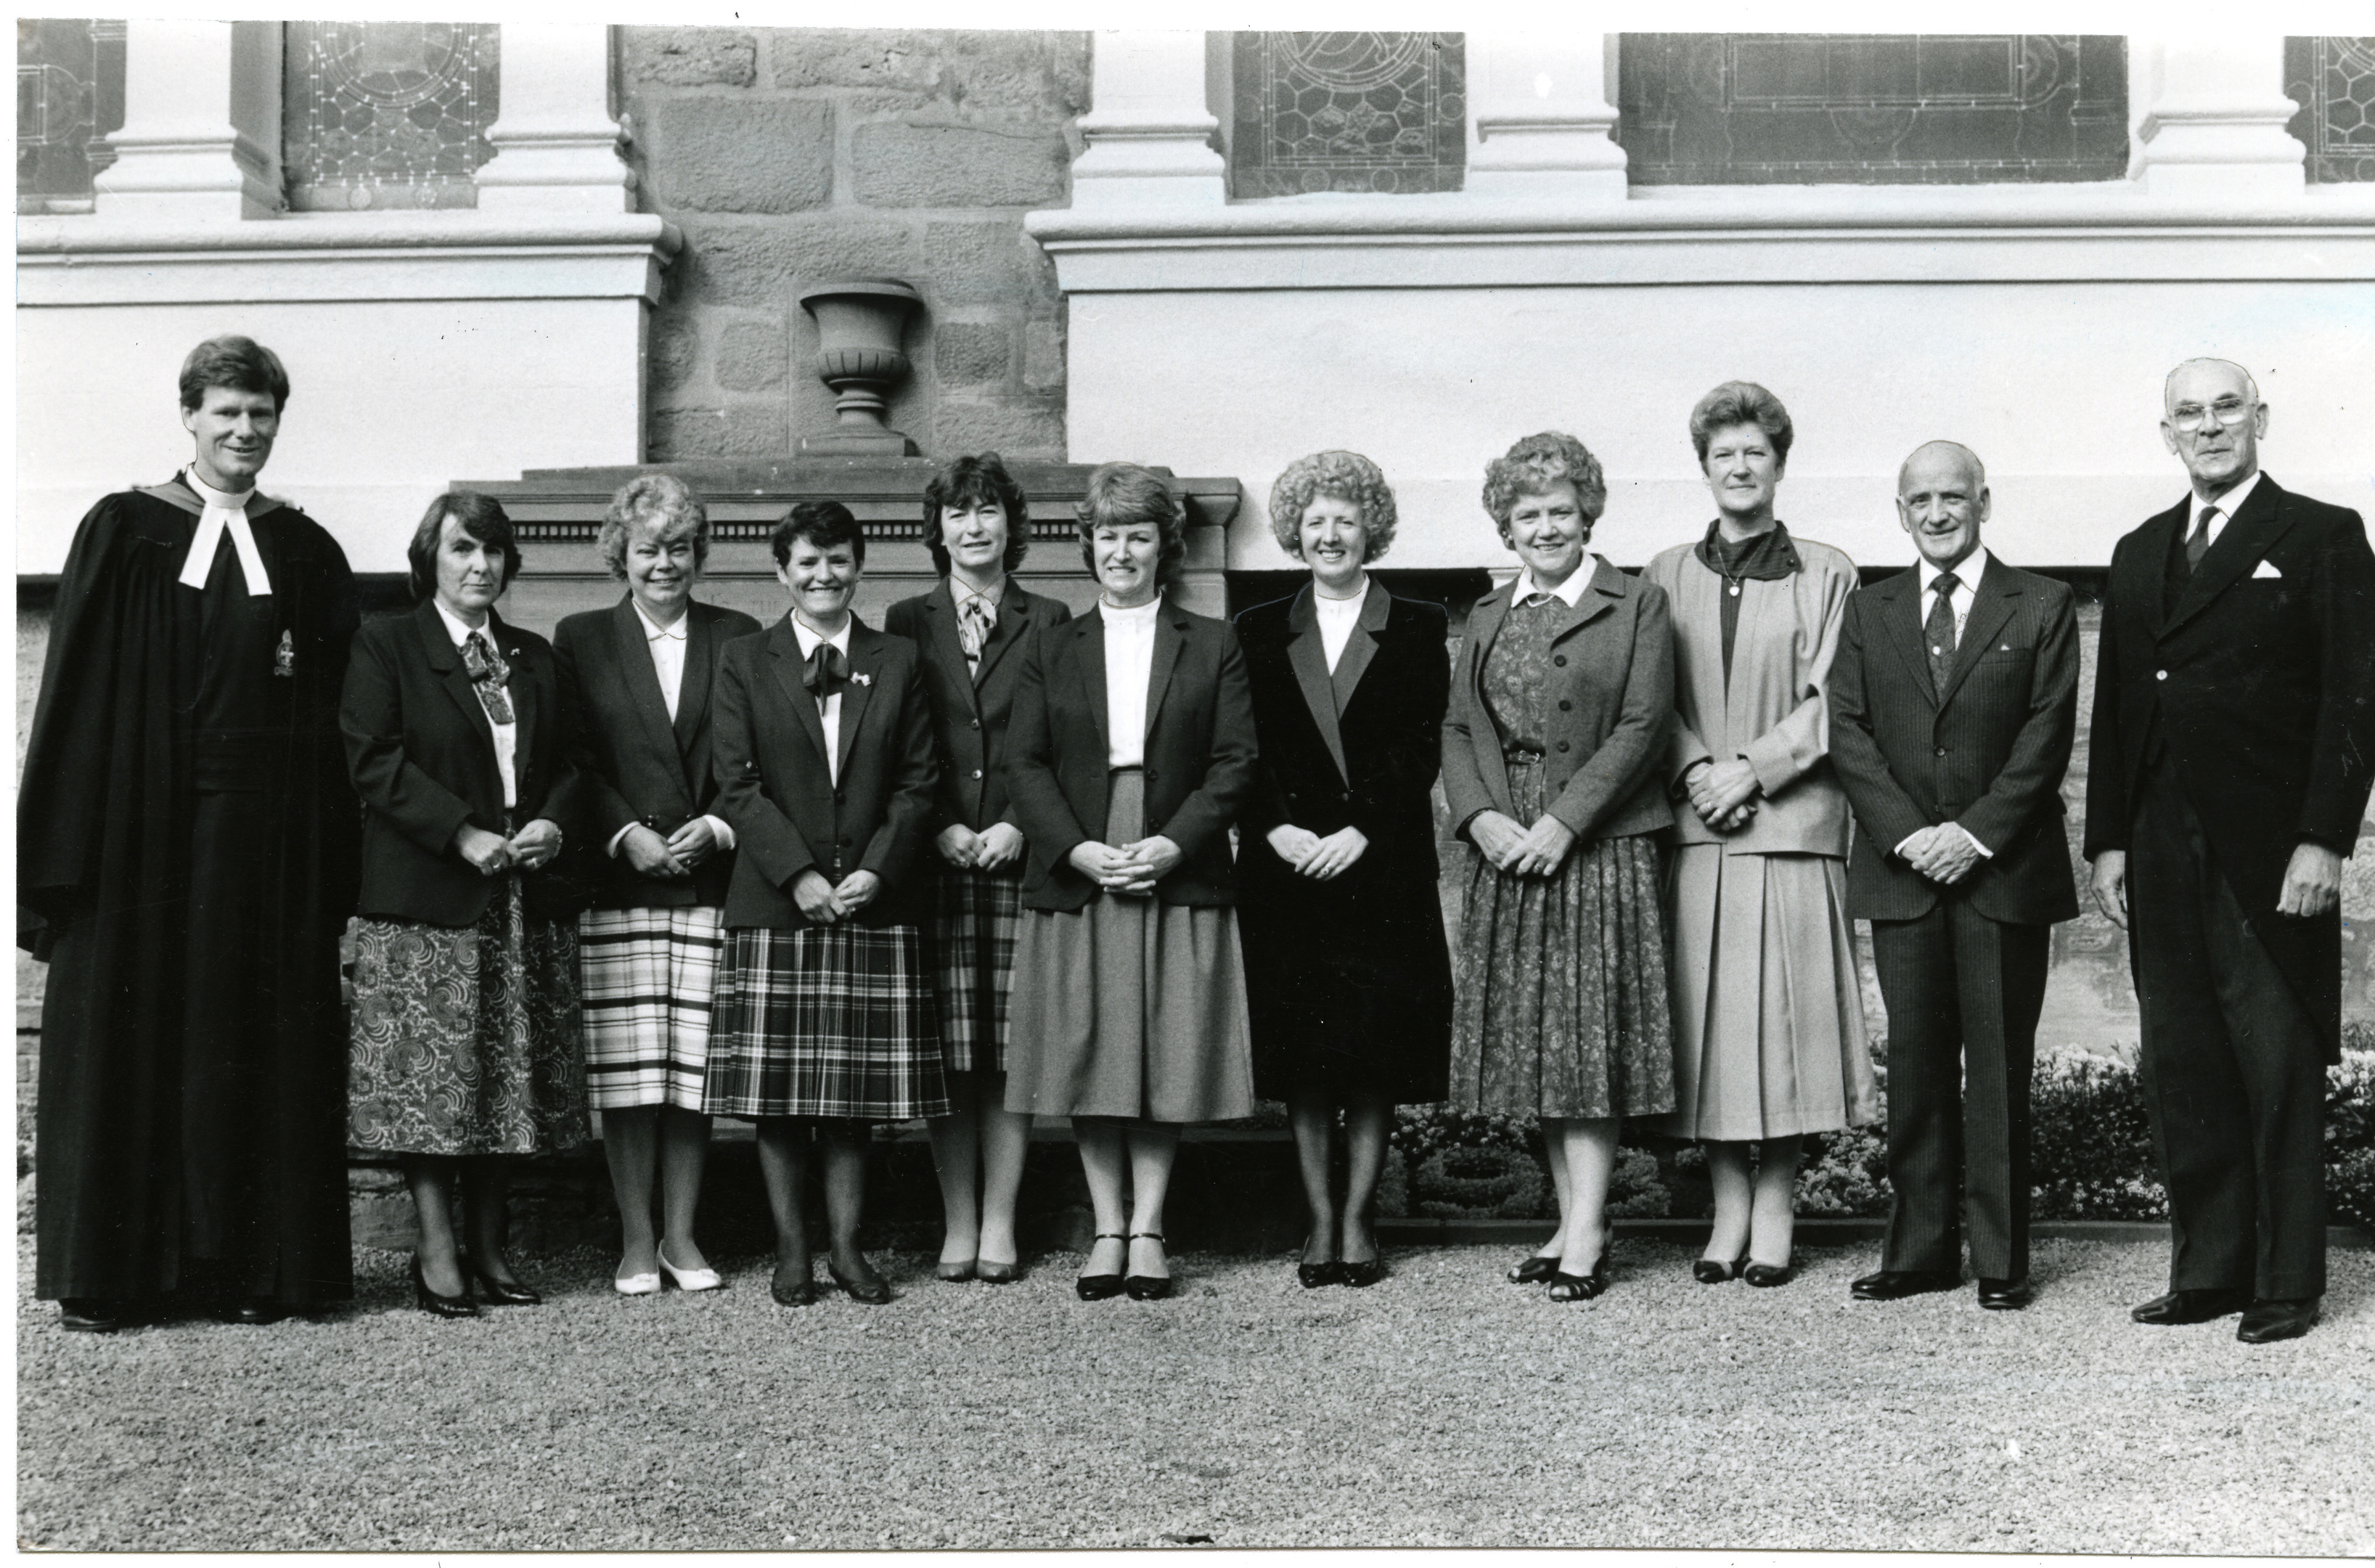 First Women Elders. Photograph showing the group of first women elders to be inducted to St Andrews Parish Church in 213 years. L/R: Rev Ian Petrie, Sheila Baird, Jay Scott, Helen Holden, Sheila Valentine, Audrey Ower, Merelyn Baxter, Mr Mudie, Christine Cant, John Risk and Bruce Leslie, session clerk. 26 September 1987. H252 1987-09-26 First Women Elders (C)DCT Dundonian. Used in Courier L/ED 1987-09-28.